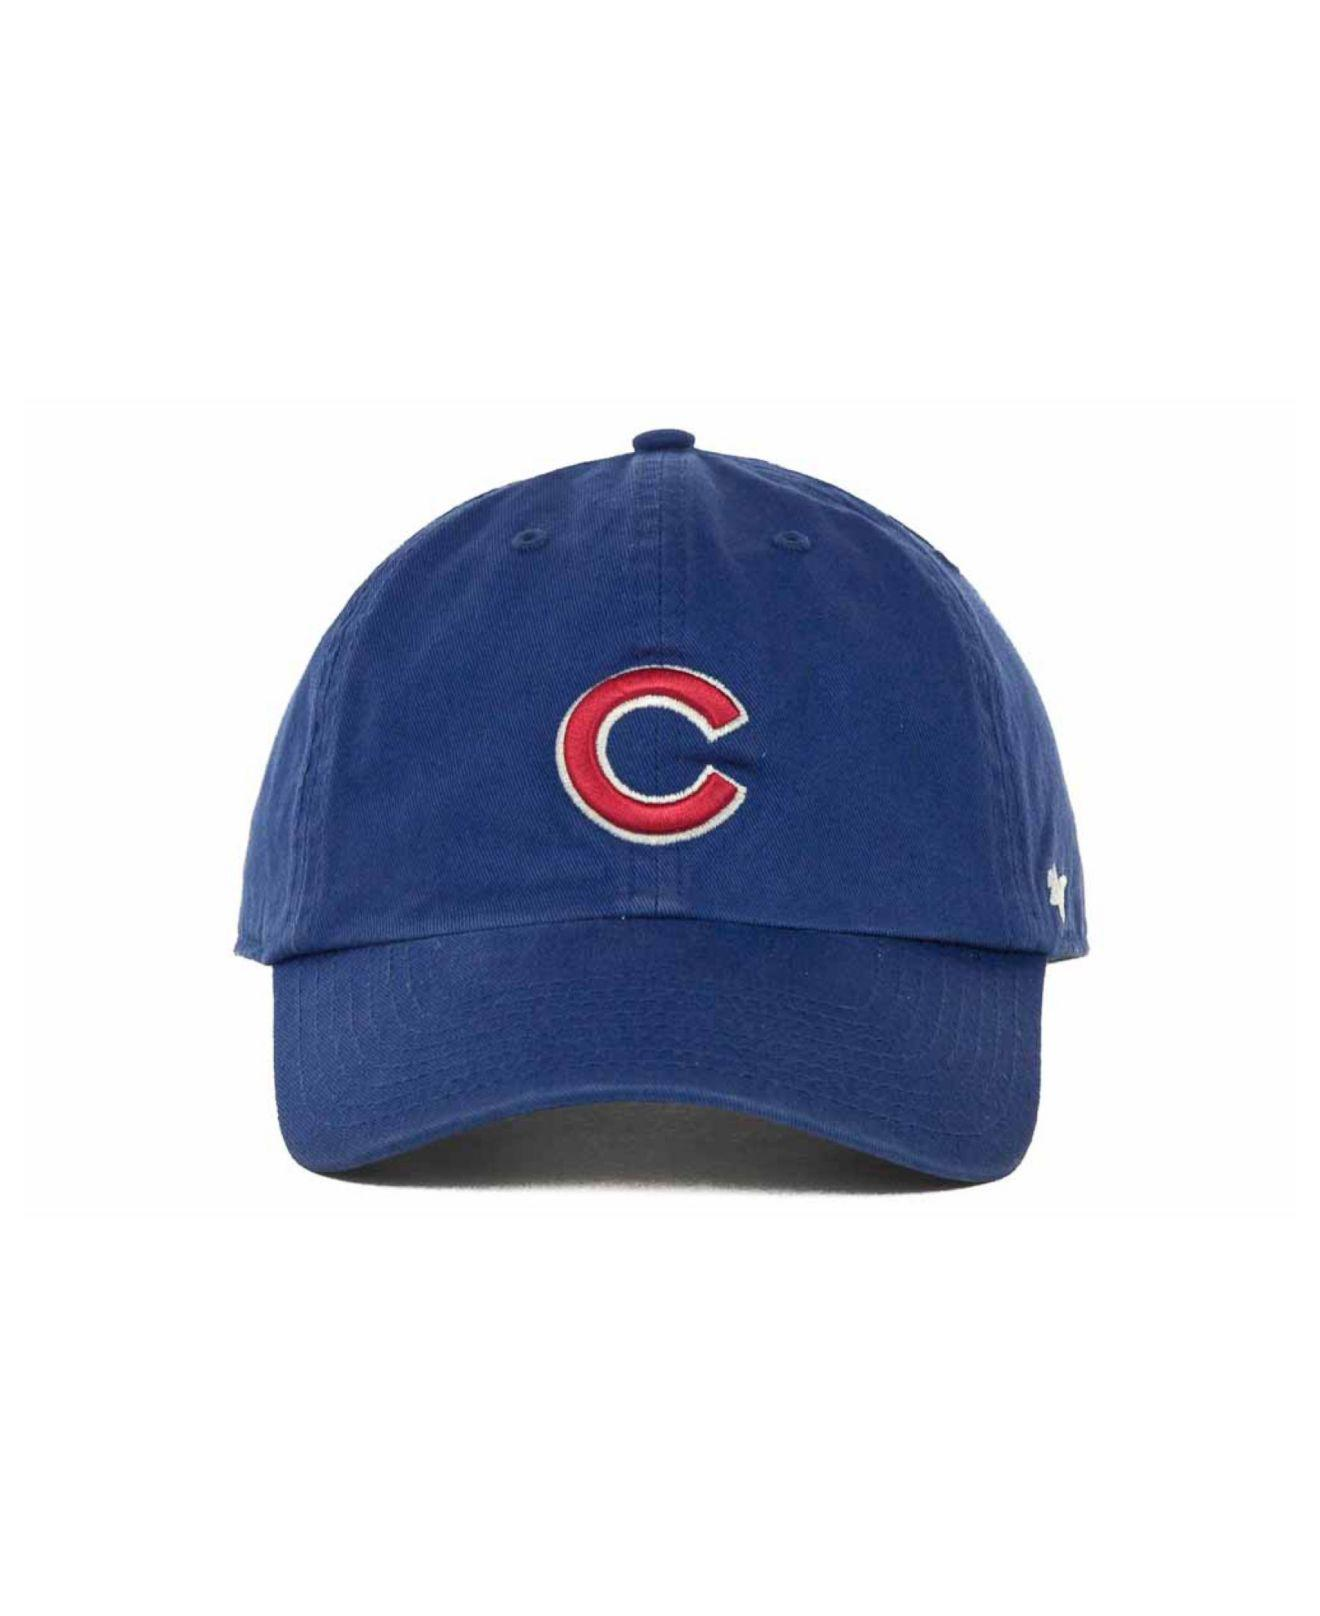 a12efbebfff Lyst - 47 Brand Chicago Cubs Clean Up Hat in Blue for Men